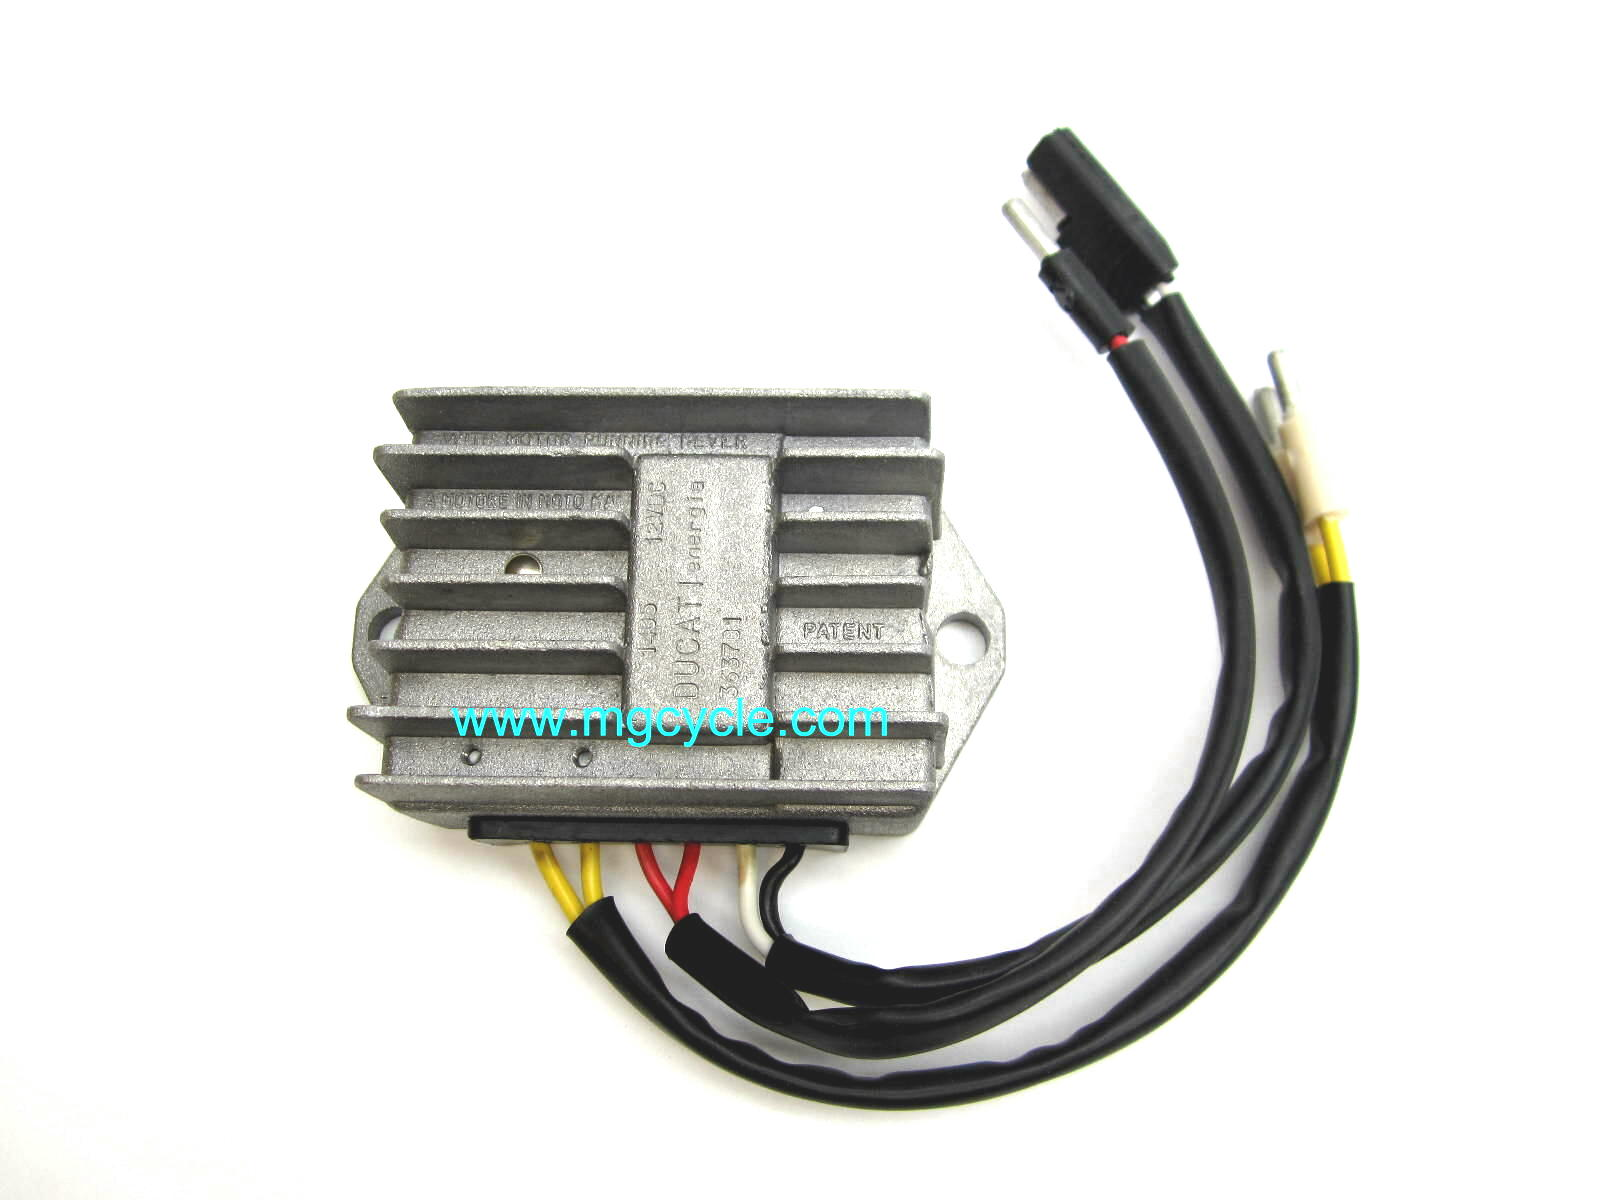 voltage regulator-rectifier for models with Ducati alternator